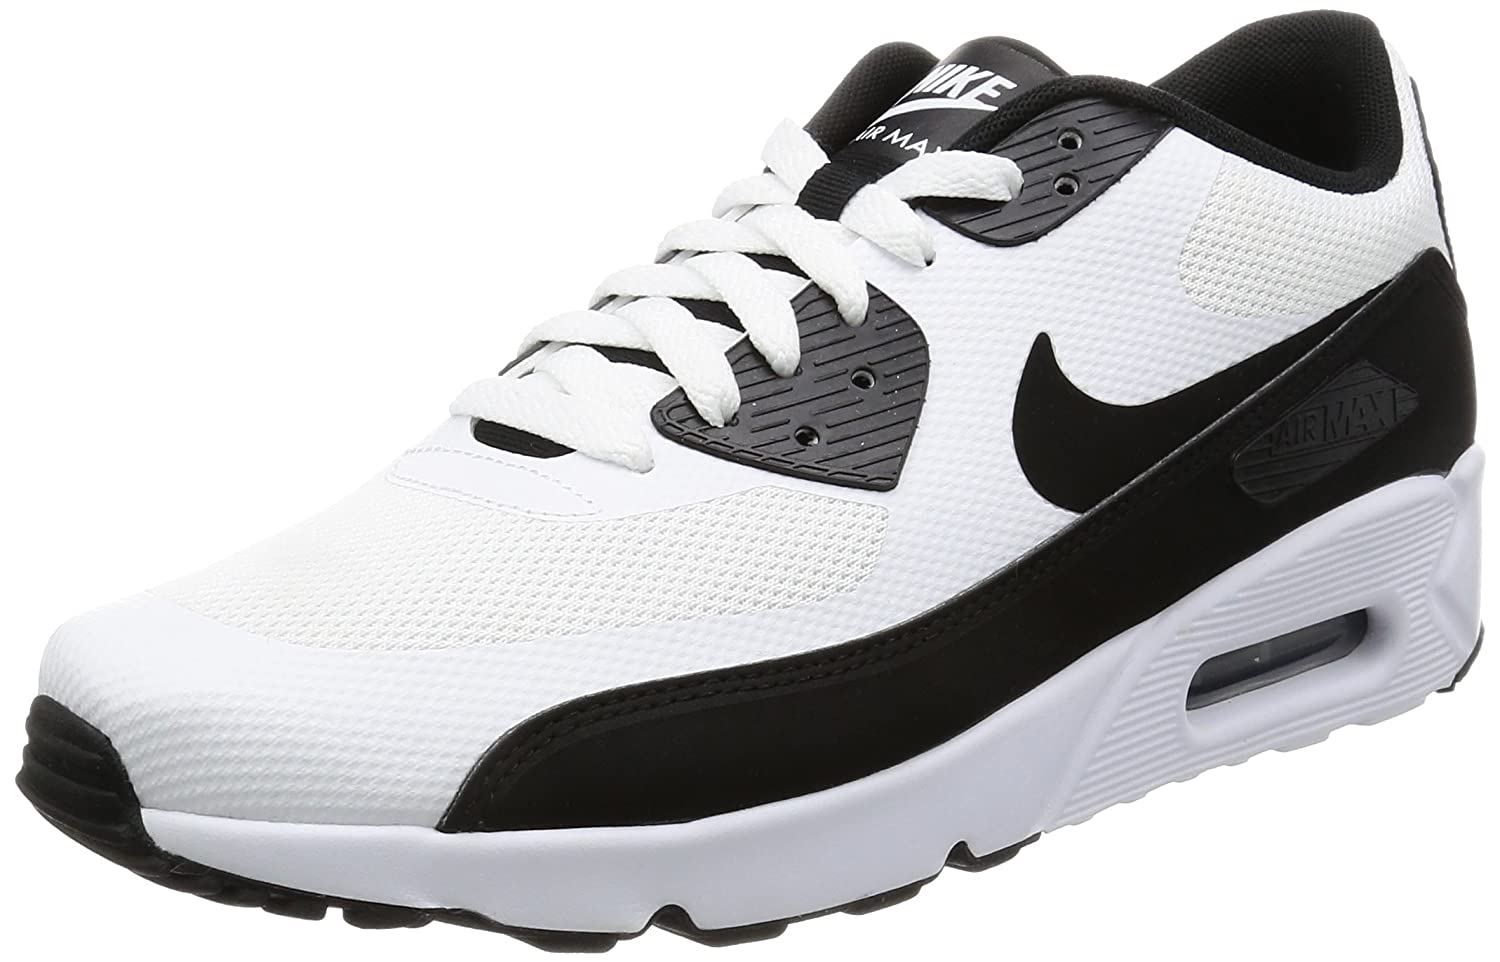 separation shoes 696ac 4ce36 Amazon.com   Nike AIR MAX 90 Ultra 2.0 Essential Mens Running-Shoes  875695-100 13 - White Black-White   Road Running